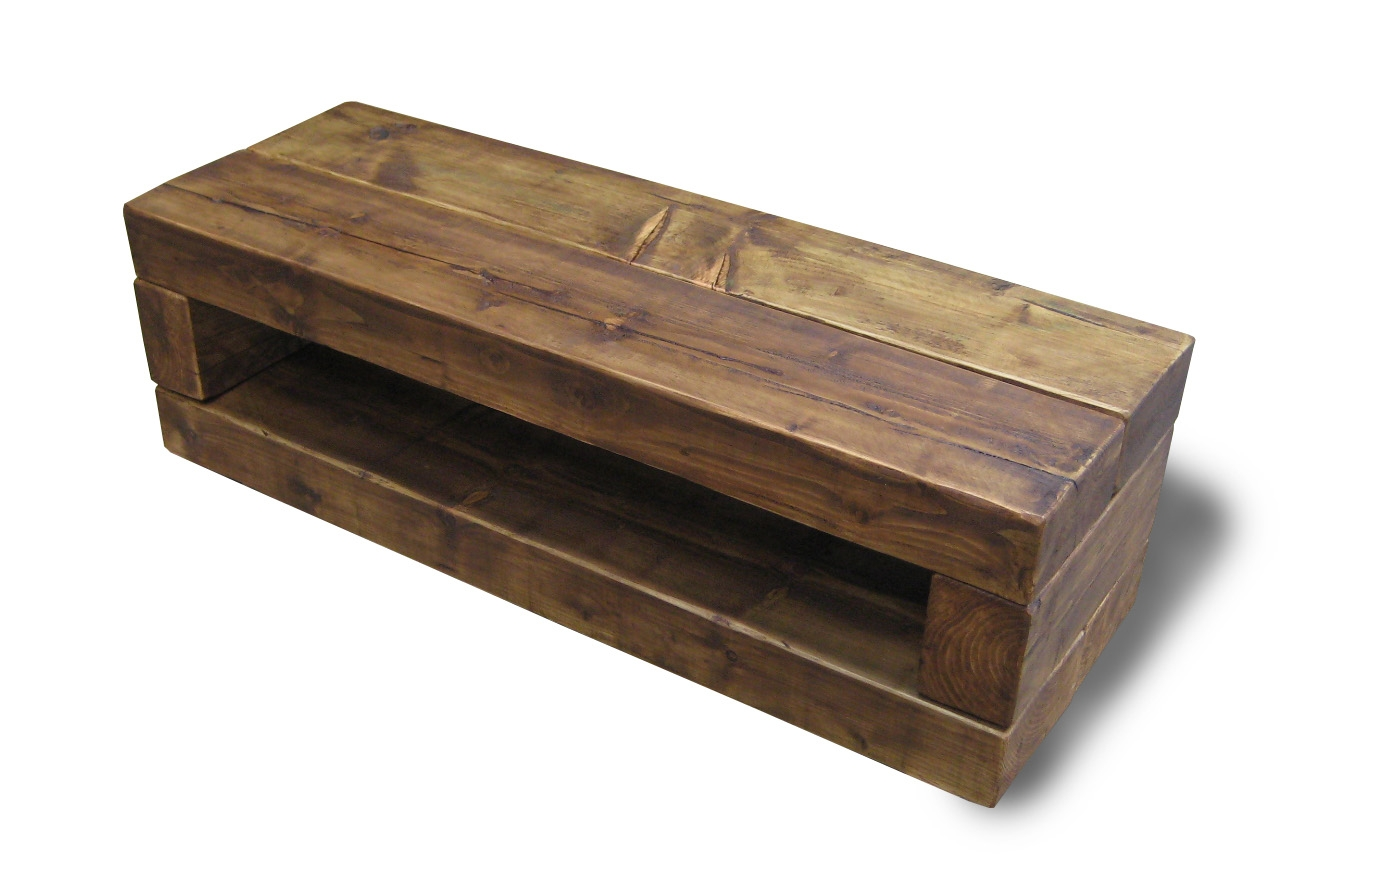 Chunky Stretch Tv Stand The Cool Wood Company Pertaining To Handmade Tv Unit (View 3 of 15)